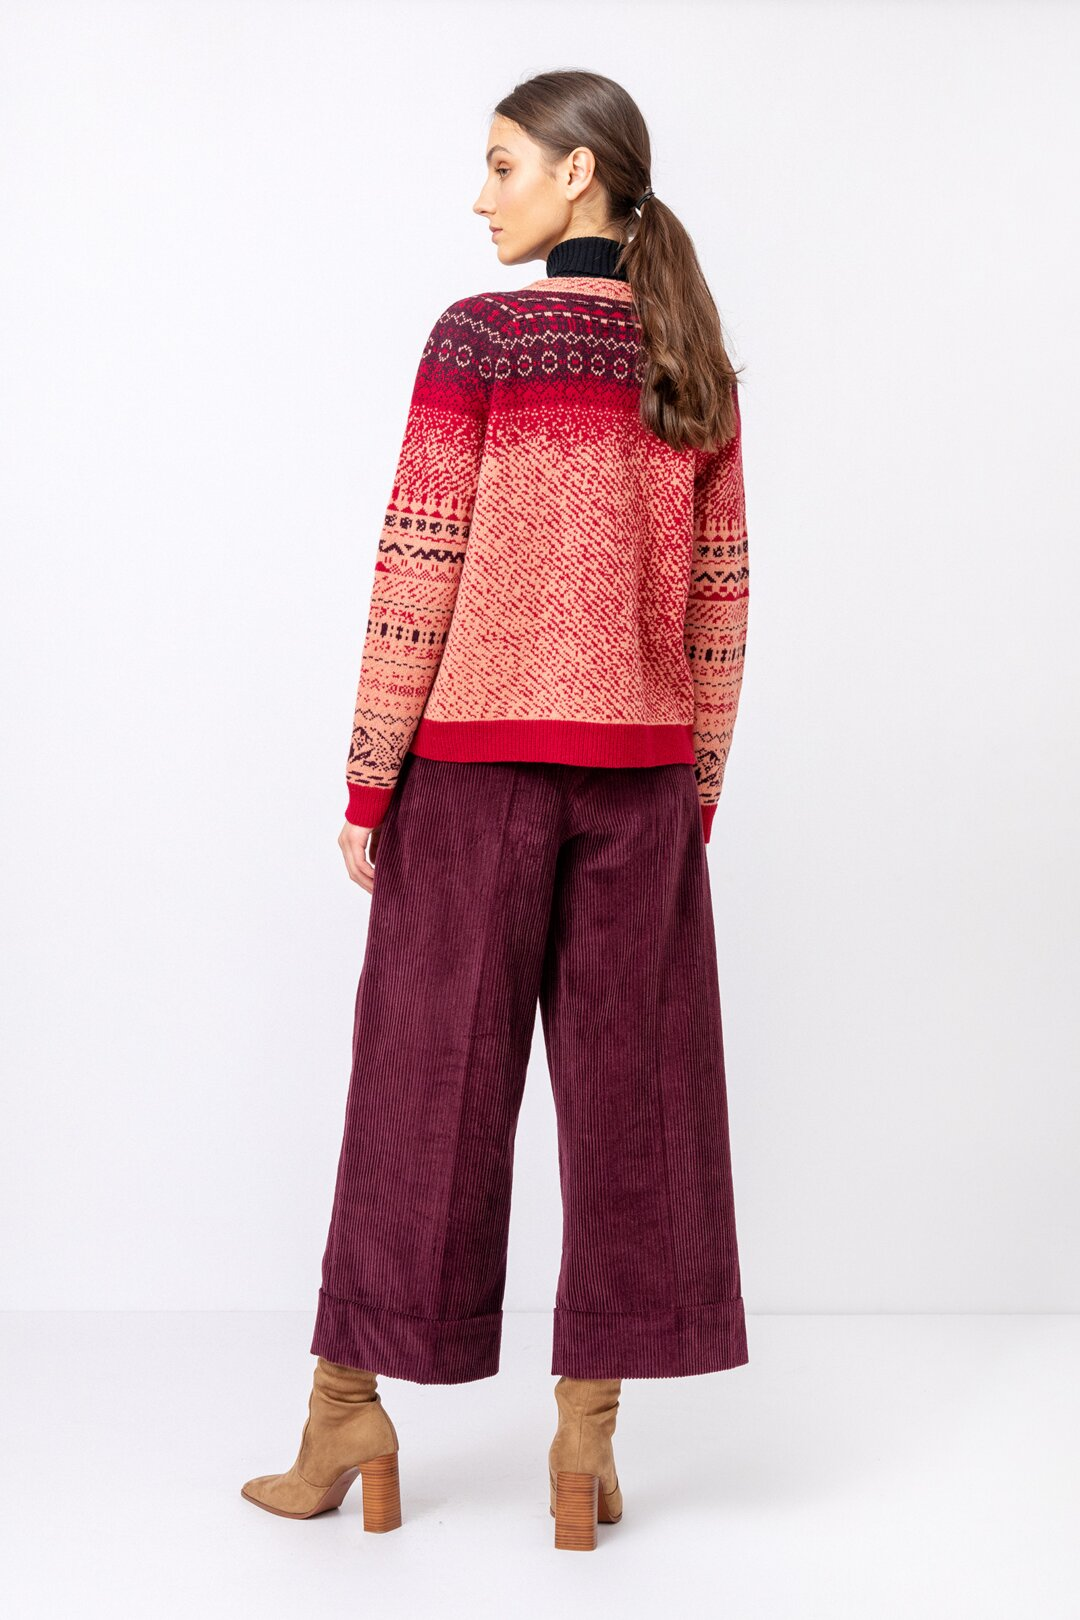 outfit-7c8a8790